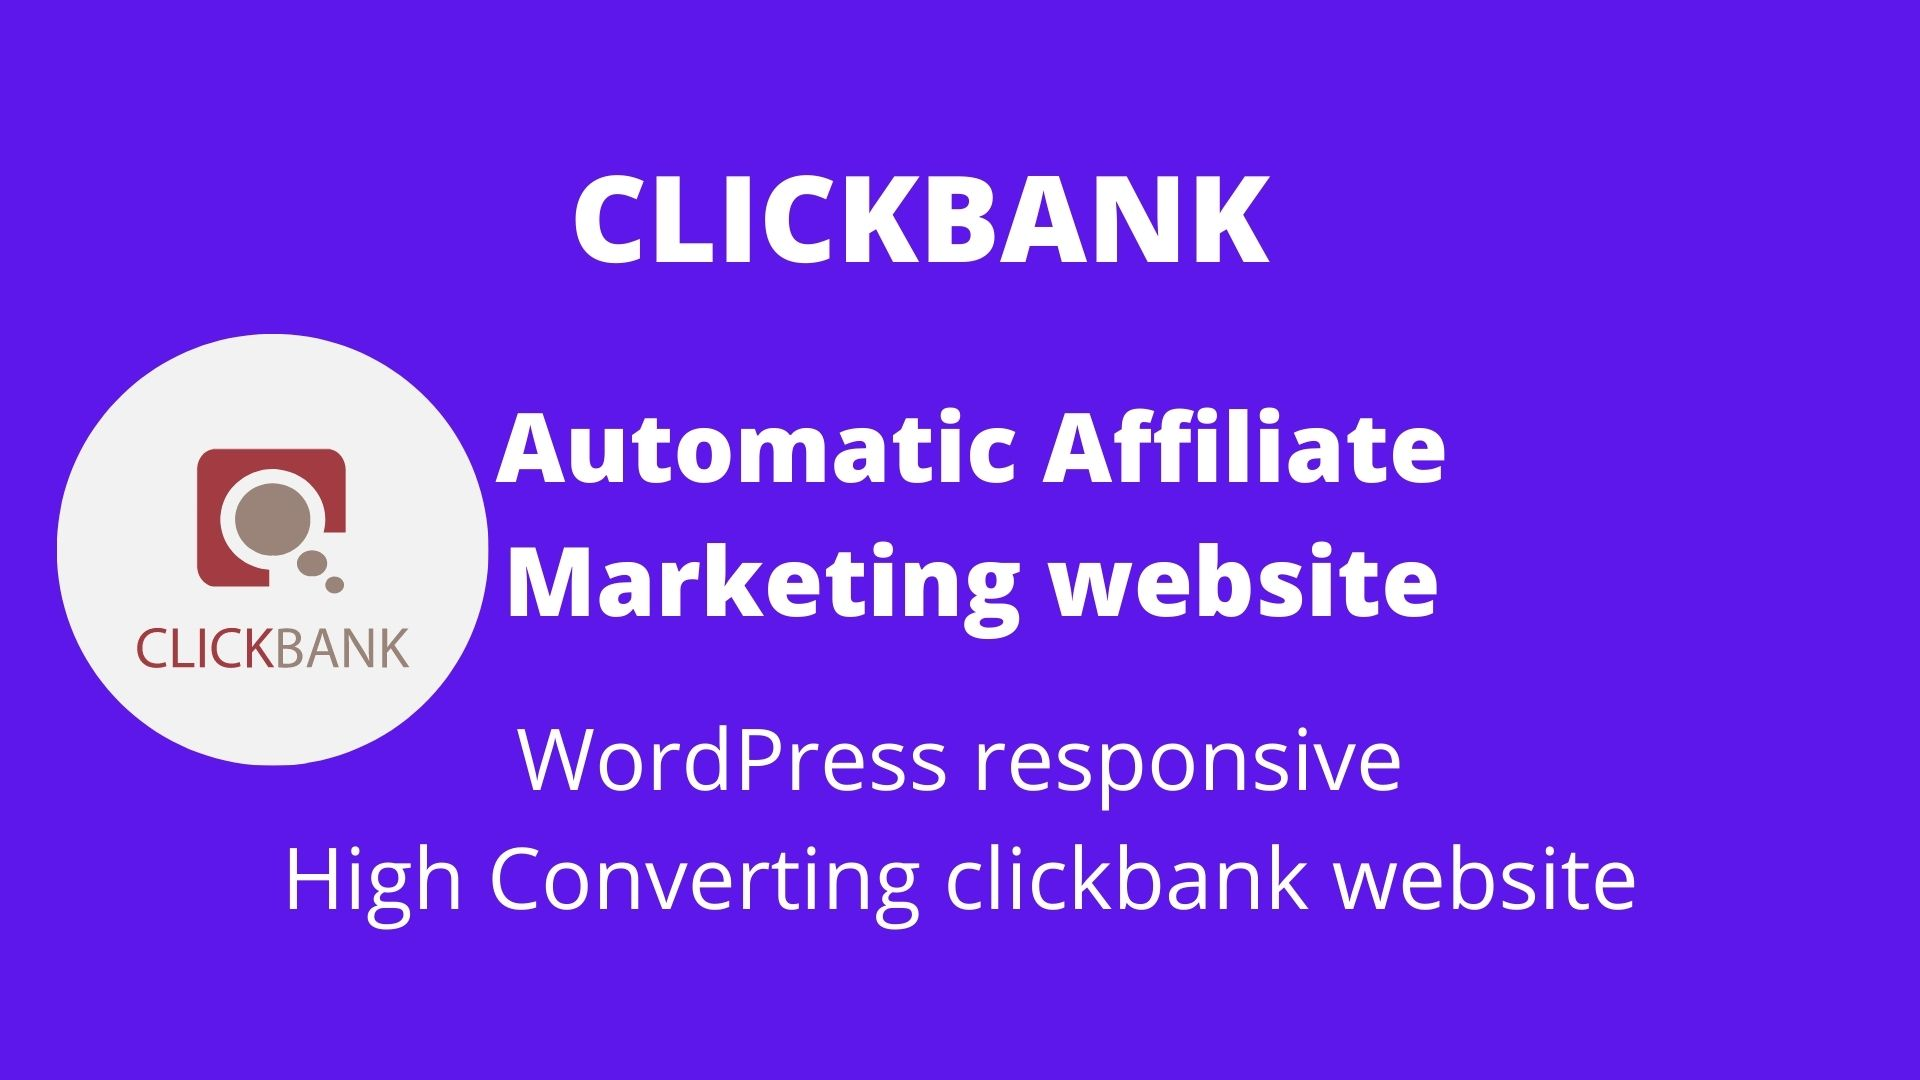 I will build premium clickbank affiliate website to make huge income